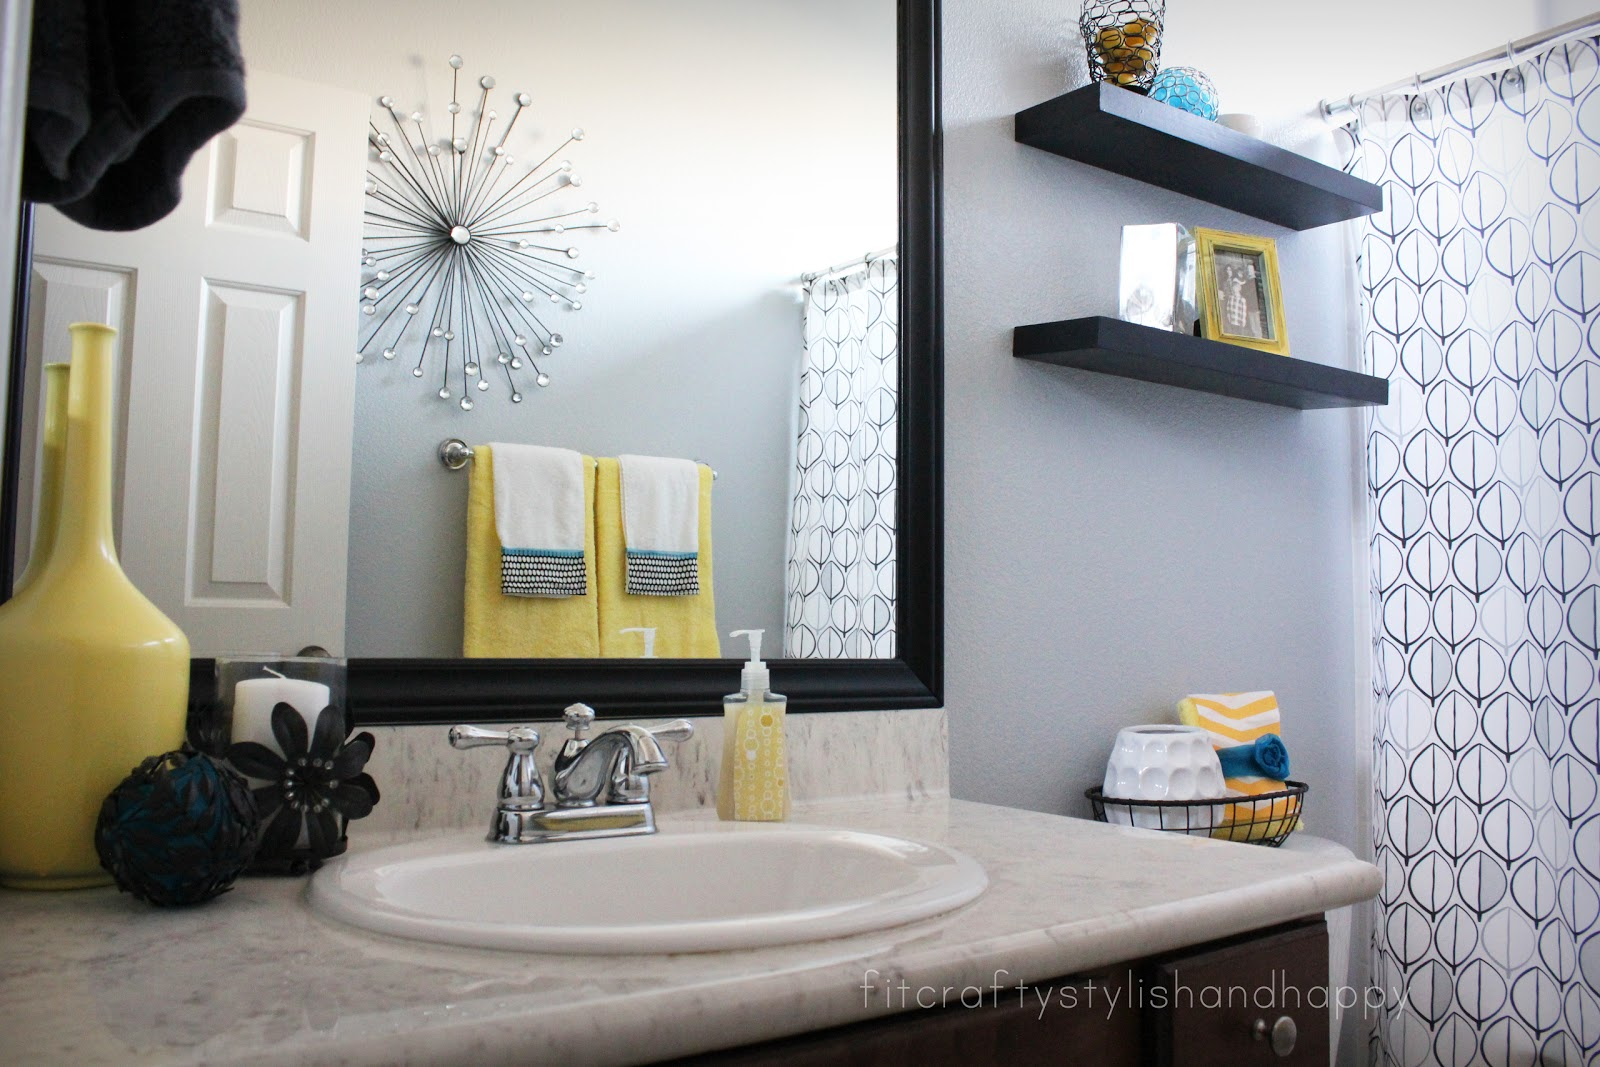 Bathroom Decoration Ideas: Fit, Crafty, Stylish And Happy: Guest Bathroom Makeover